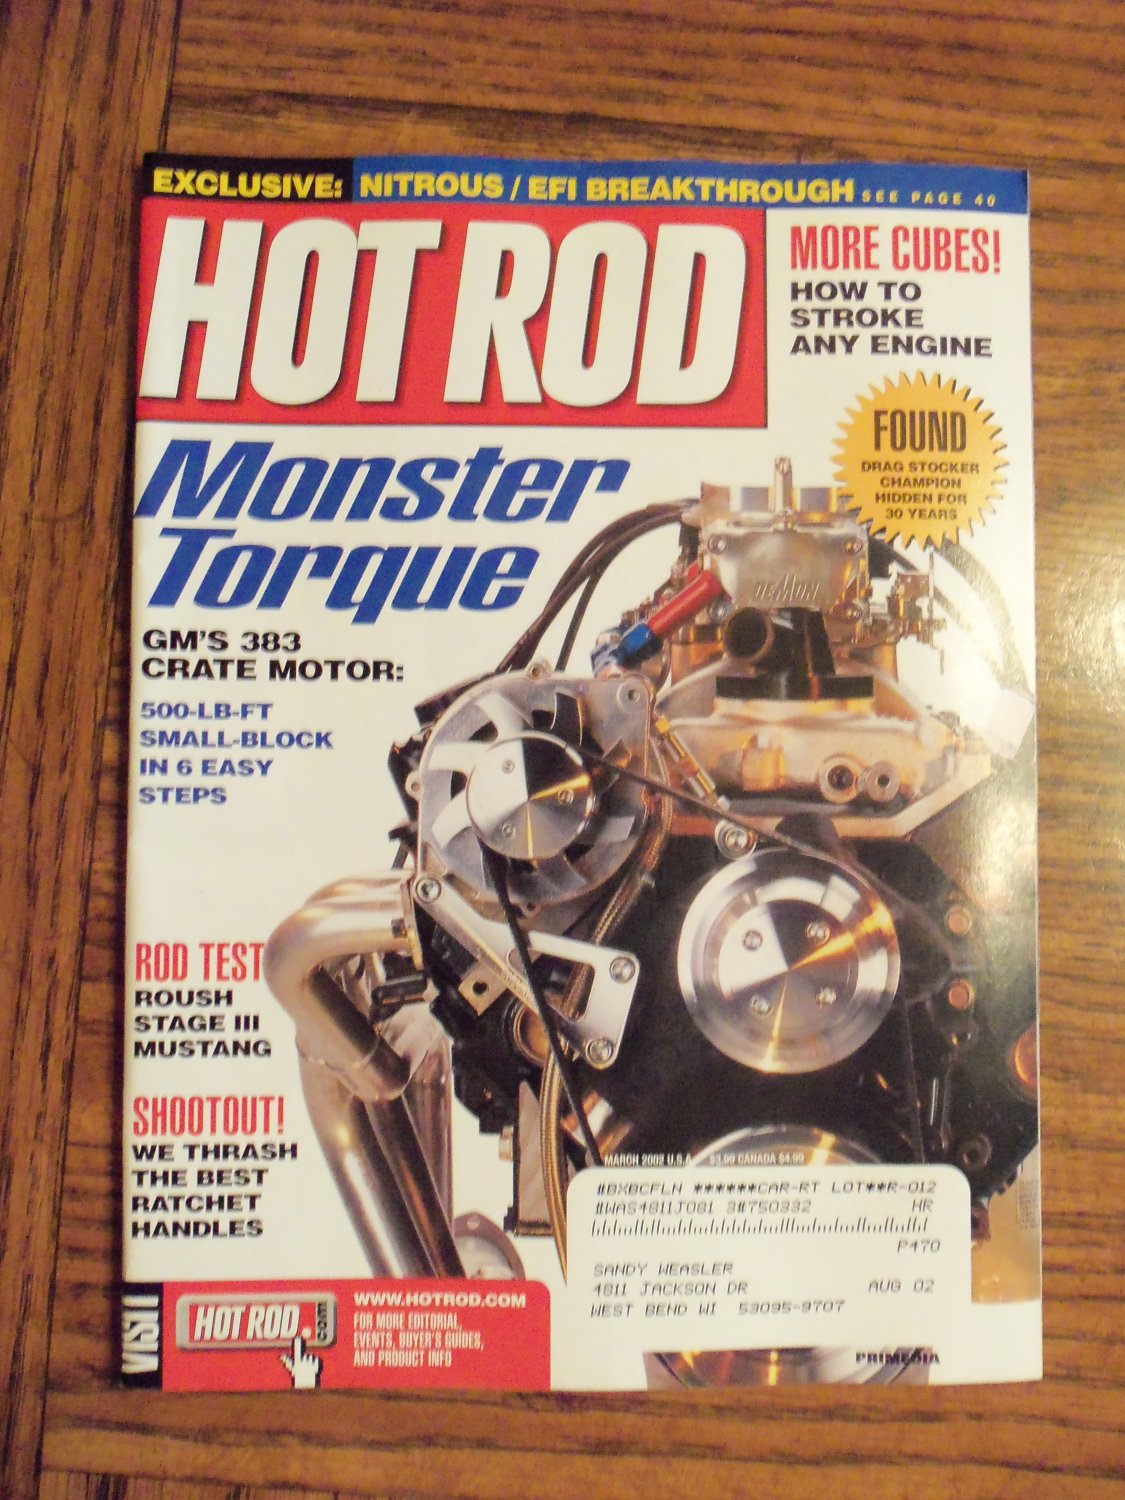 Hot Rod March 2002 Monster Torque Gm's 383 Crate Motor Back Issue Magazine 1M